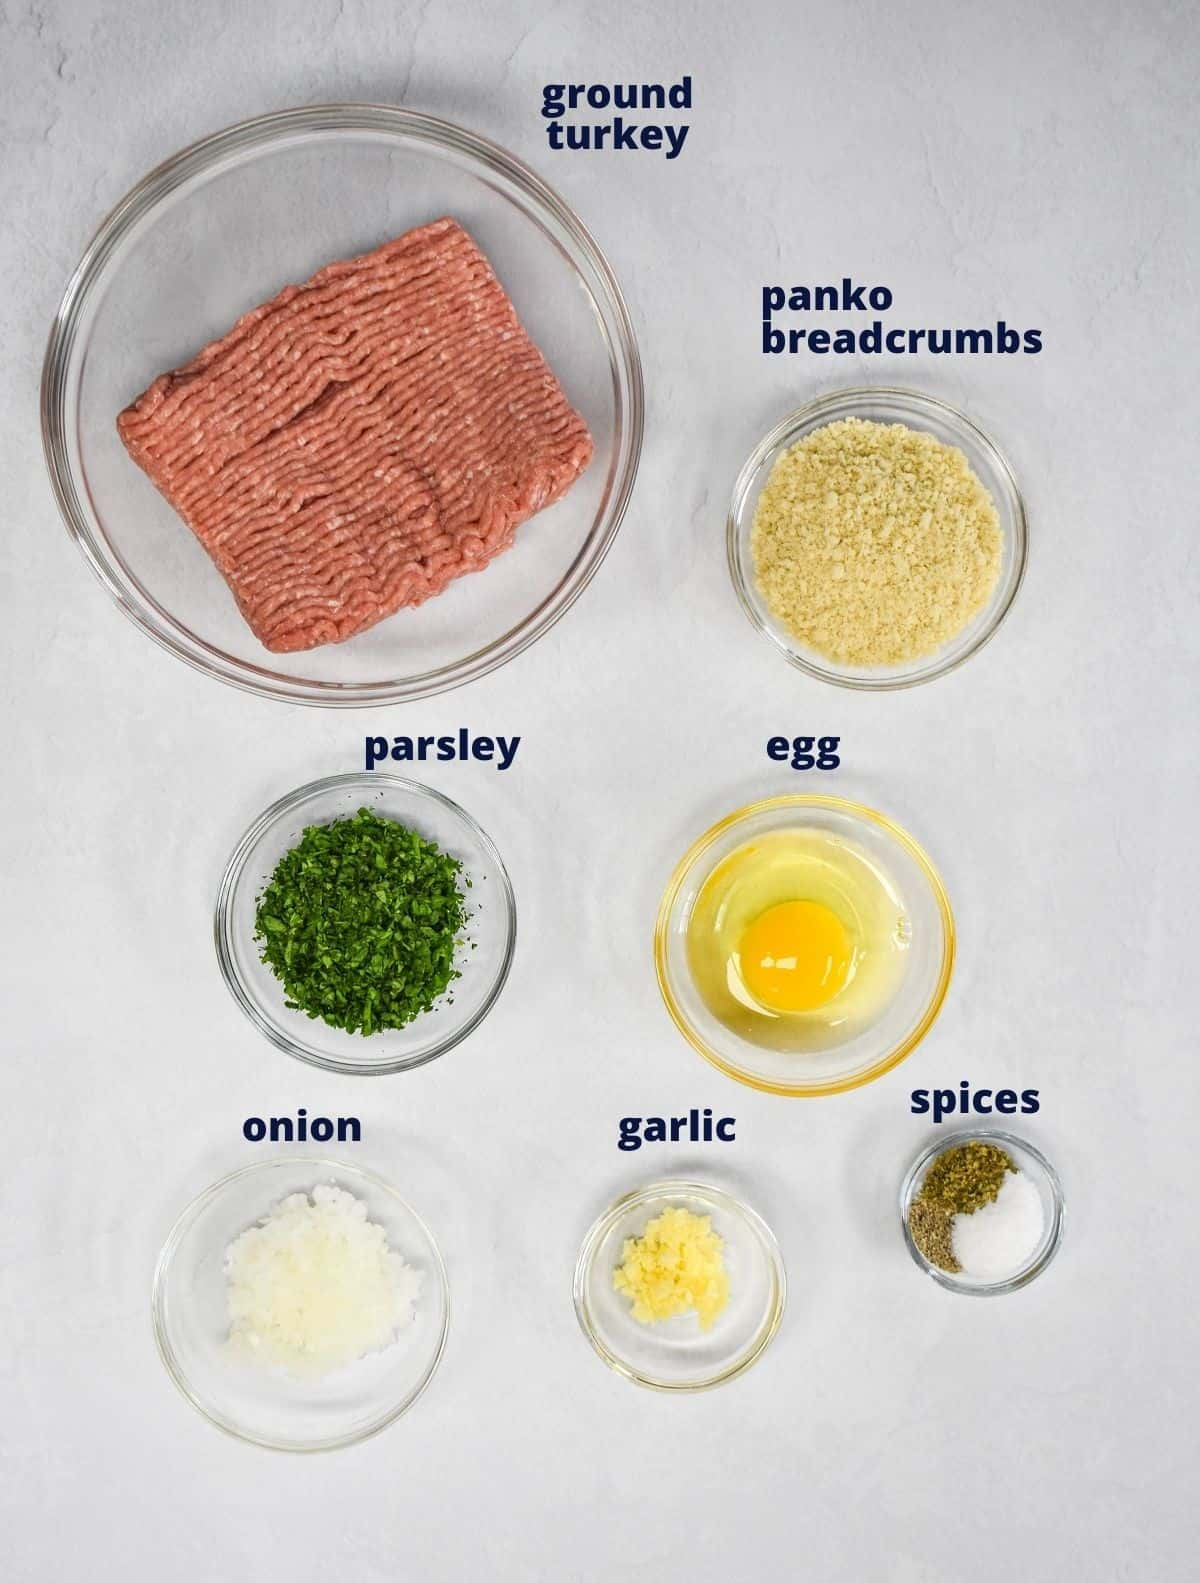 The ingredients for the meatballs prepped and arranged in glass bowls on a white table.